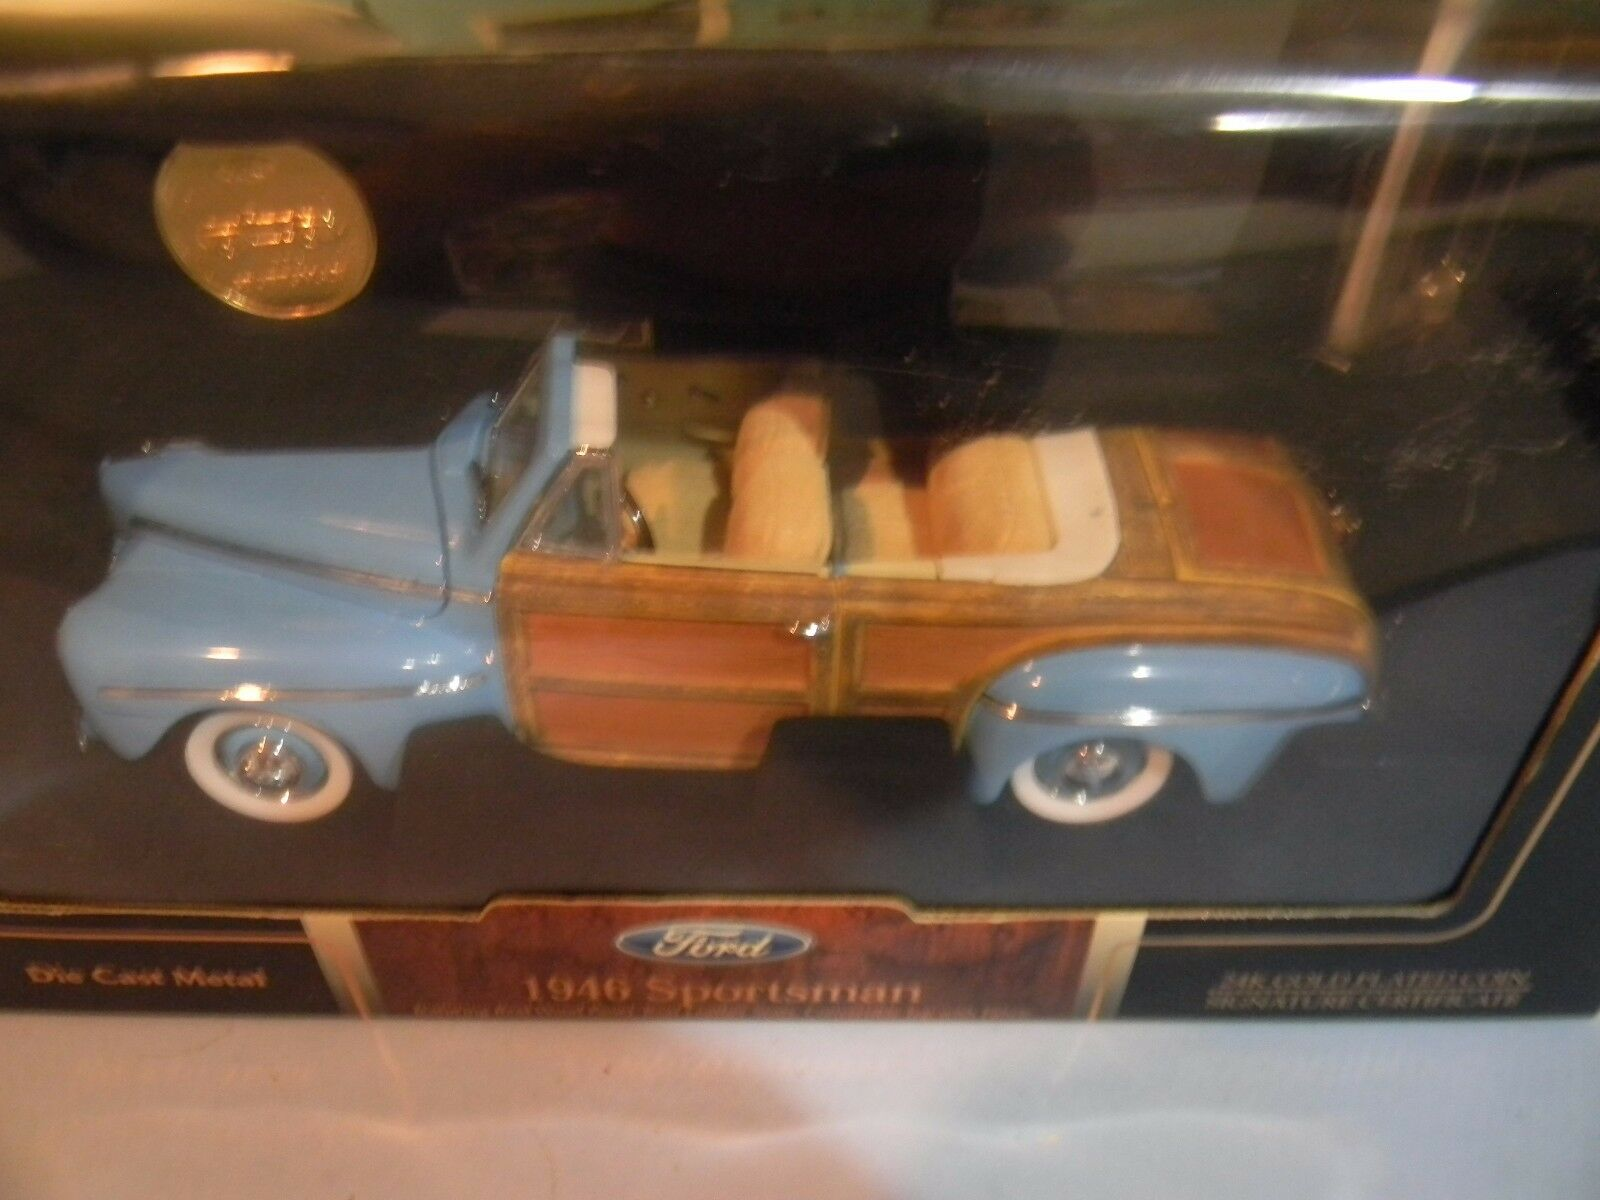 1 18 Scale 1946 Ford Sportsman - Road Signature